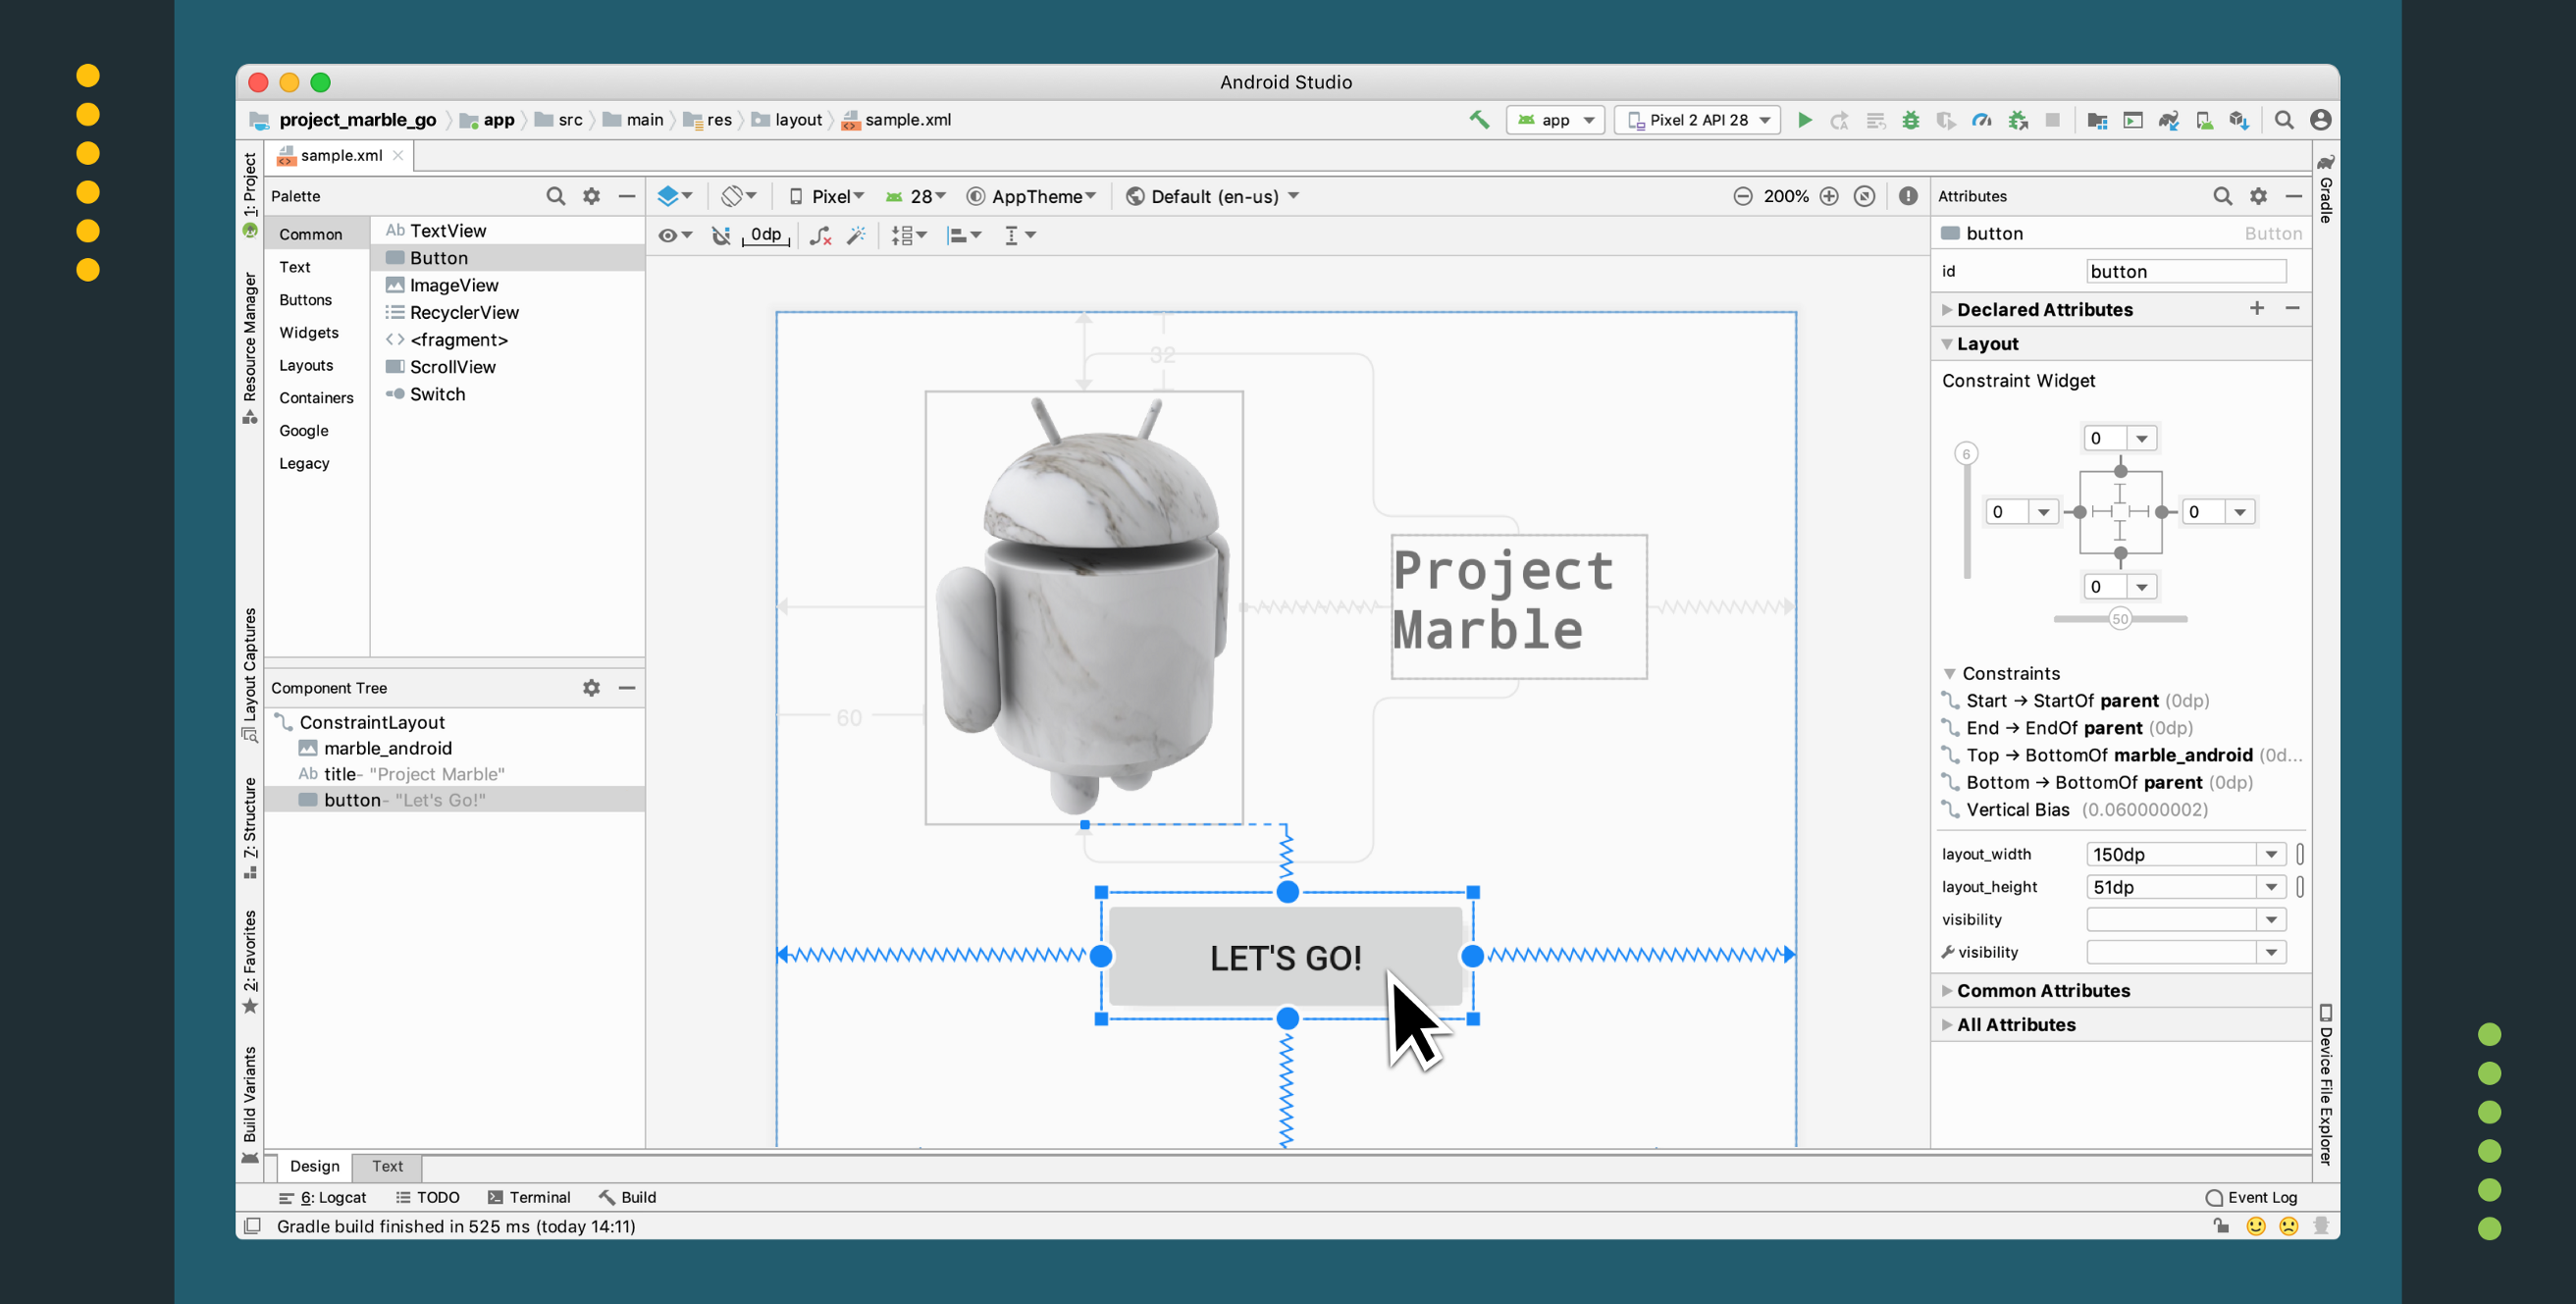 Android Studio Project Marble: Layout Editor - Android Developers